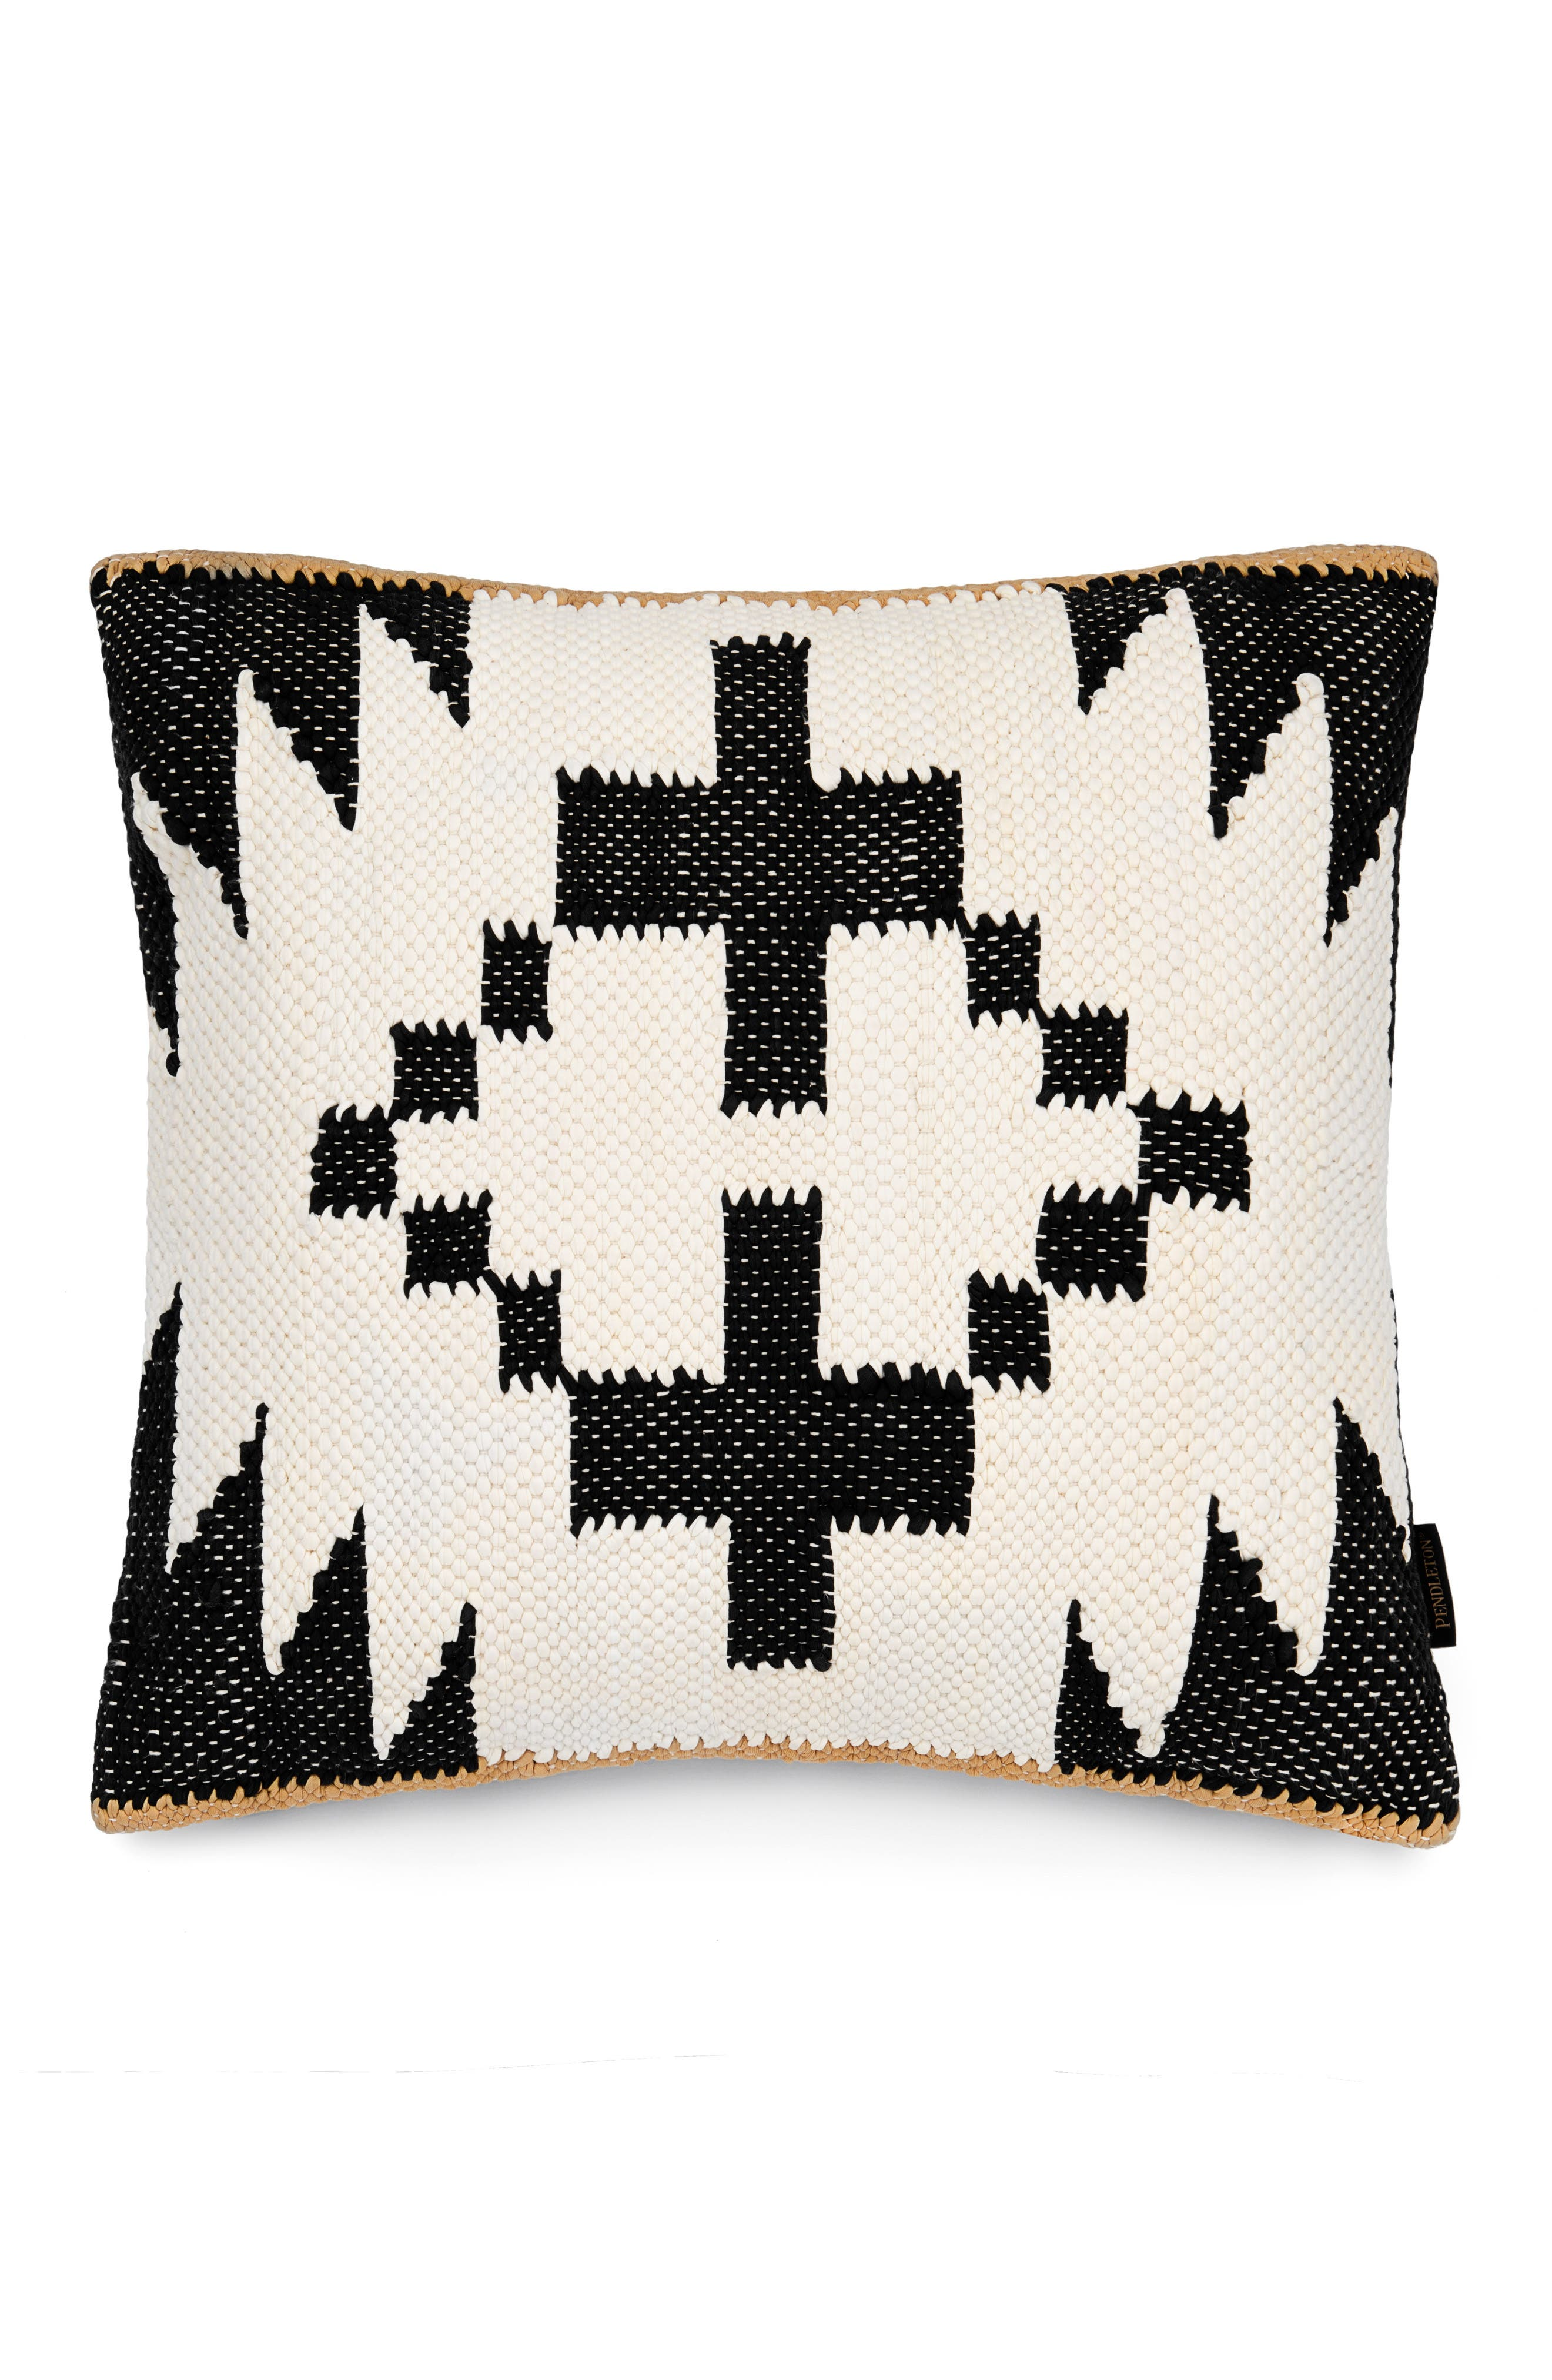 Spider Rock Chindi Oversize Accent Pillow,                         Main,                         color, 250